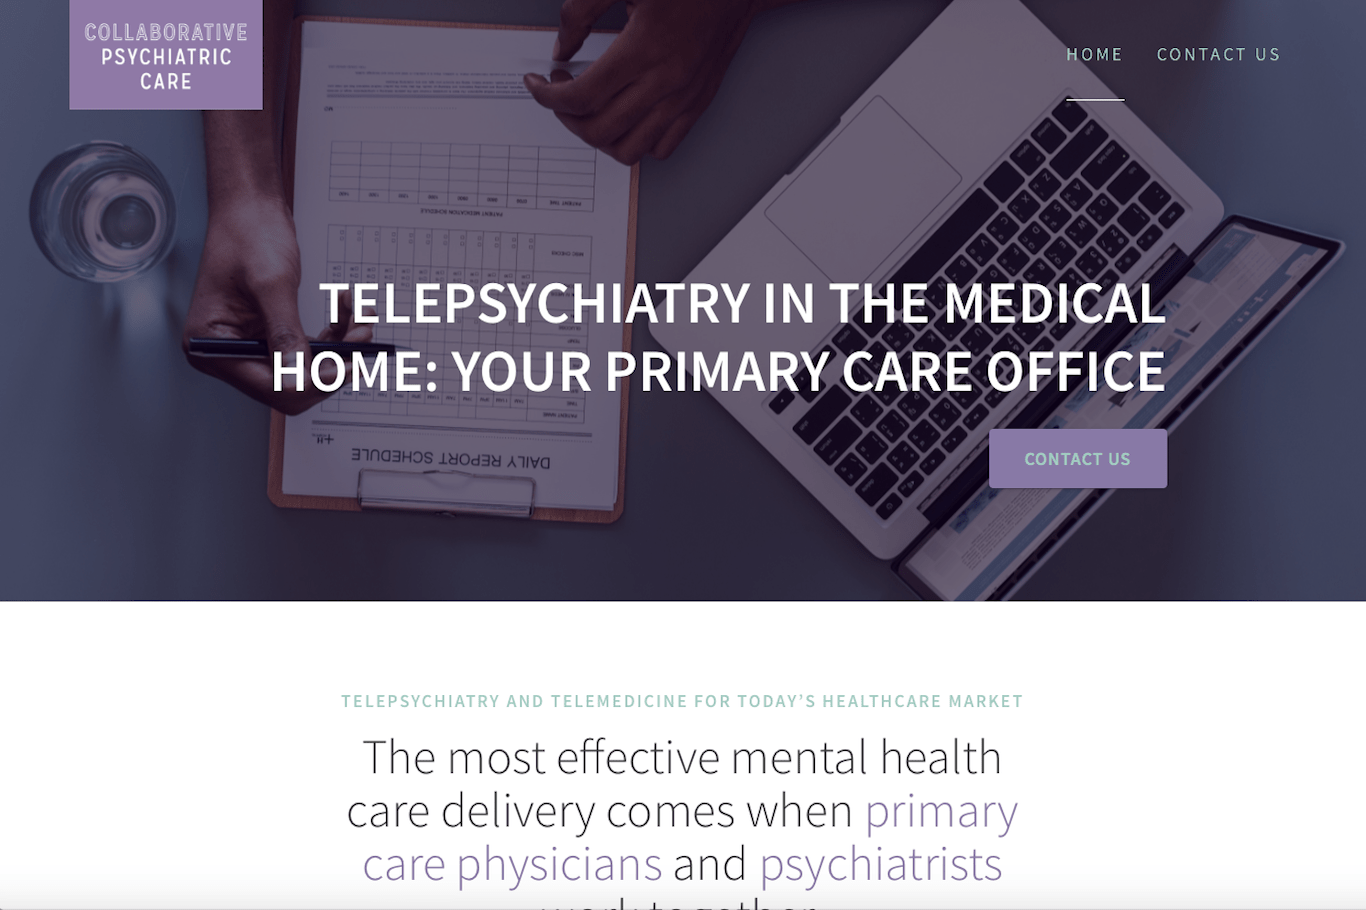 Collaborative Psychiatric Care